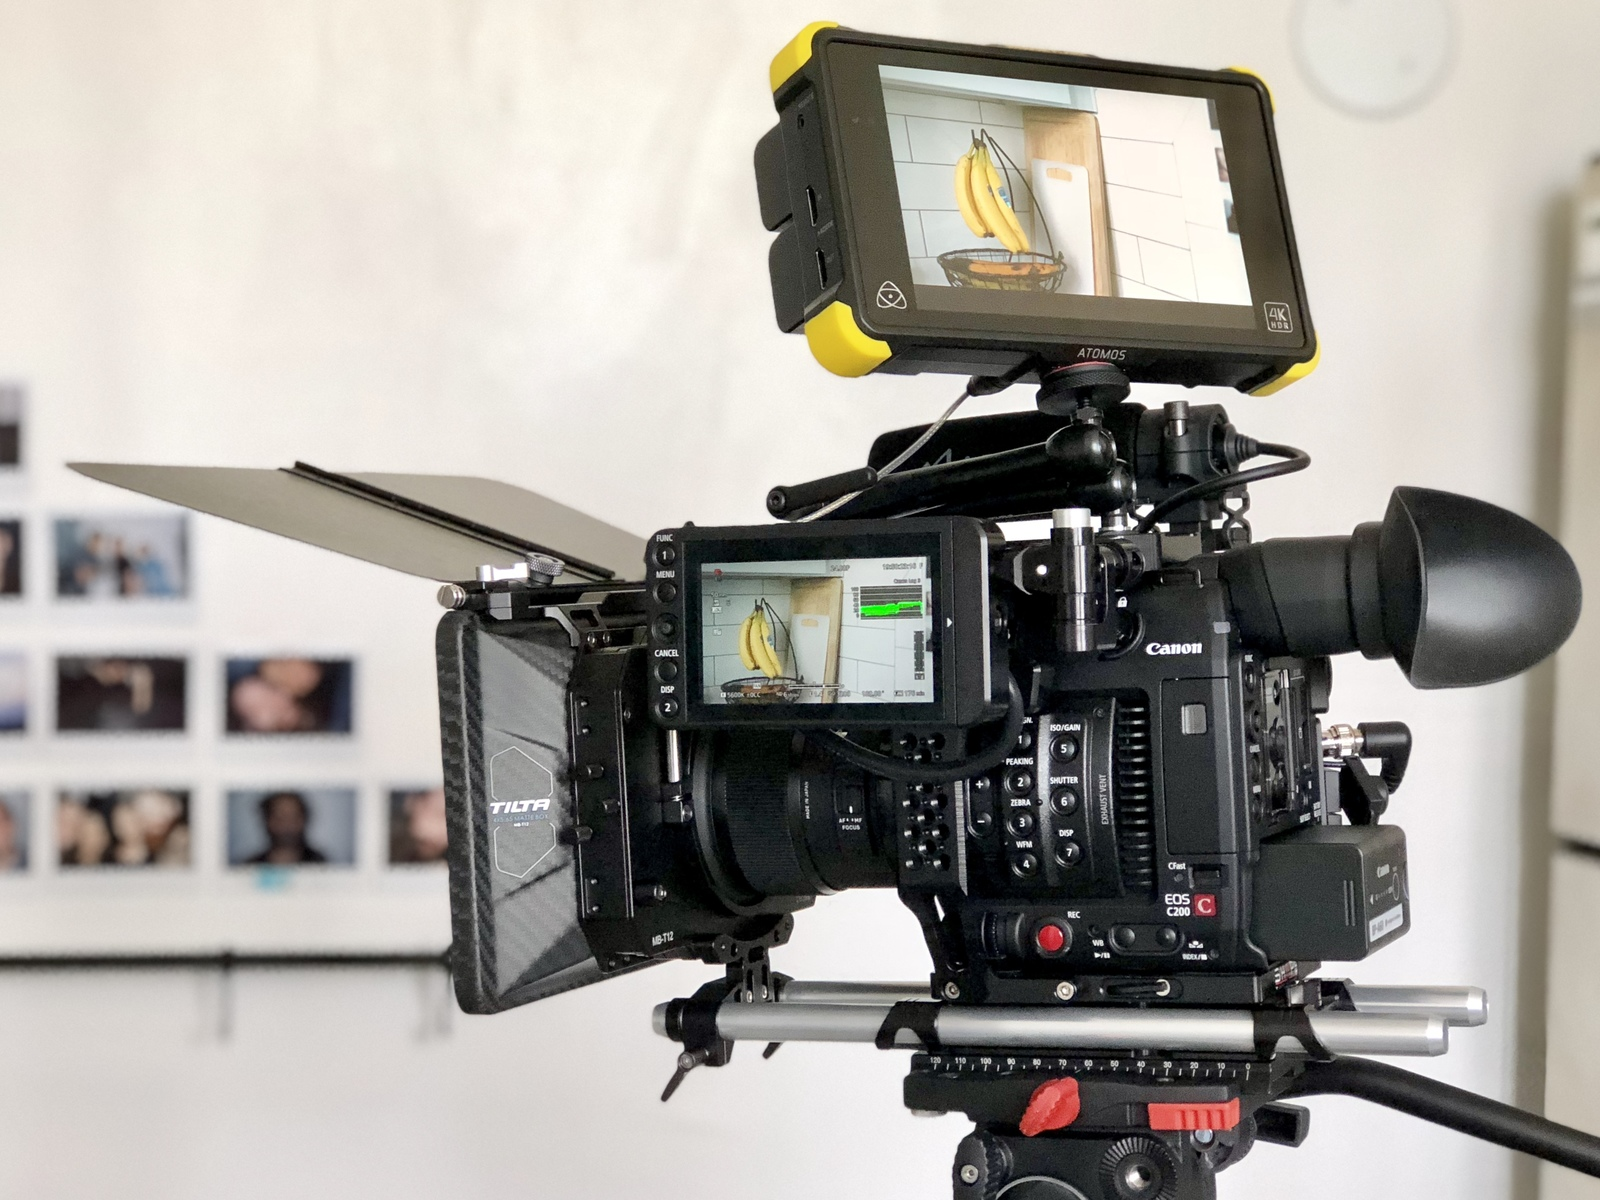 Rent a Canon C200, Shoulder kit, Monitor, Prime and Zooms lens's, Best  Prices | ShareGrid Los Angeles